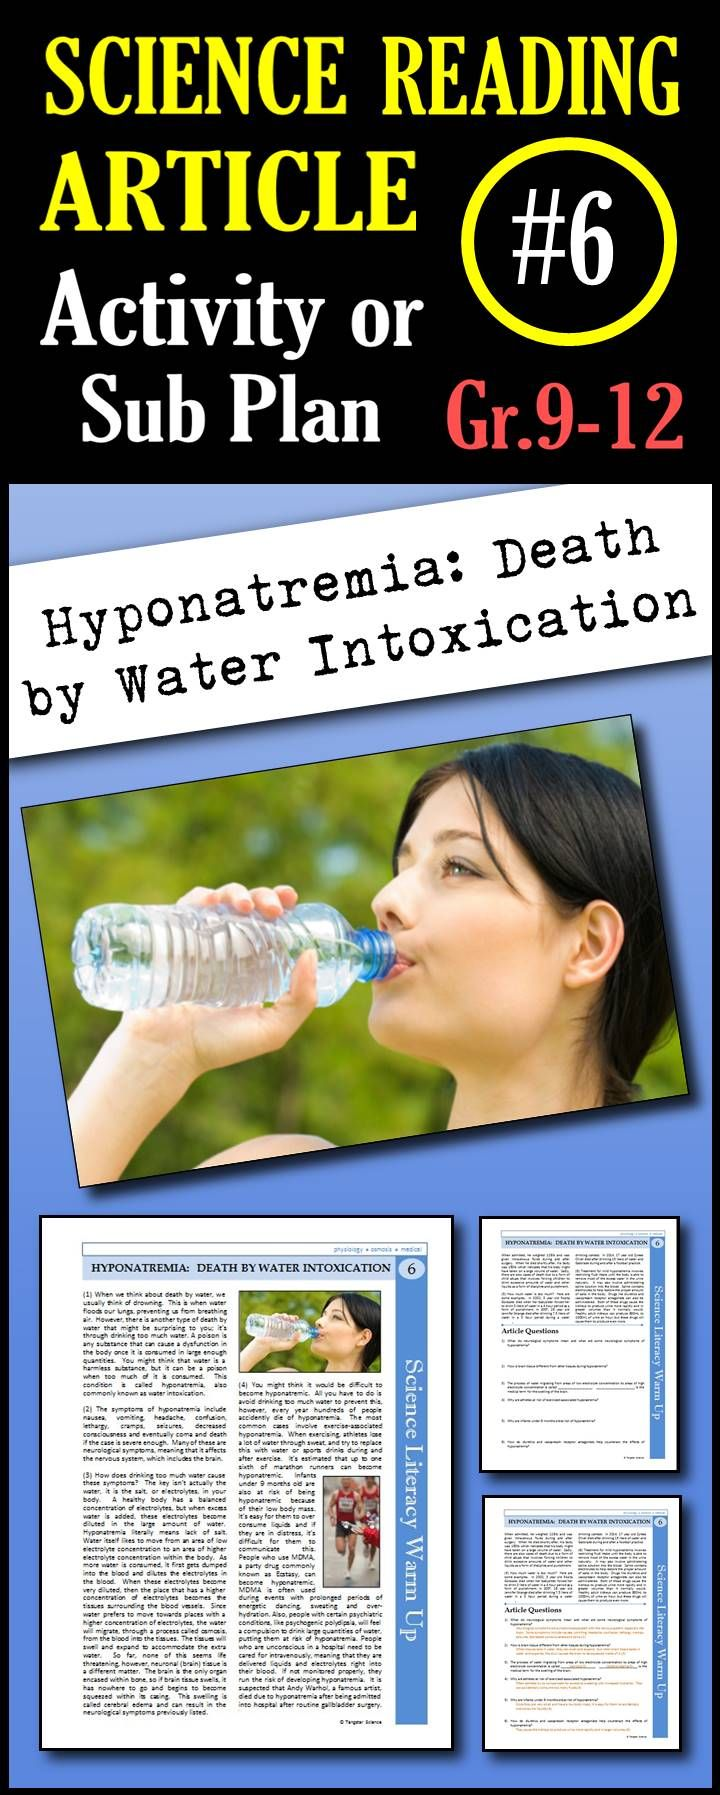 In this article, students will read about how water intoxication occurs as well as the symptoms of hyponatremia. They will also learn about who is most at risk for this condition and they will be given examples of people who have suffered from hyponatremia. This is a great in class activity, homework assignment, weekly science reading assignment, sub plan or in school suspension plan.  Use this to save time looking for engaging and appropriate articles with questions!